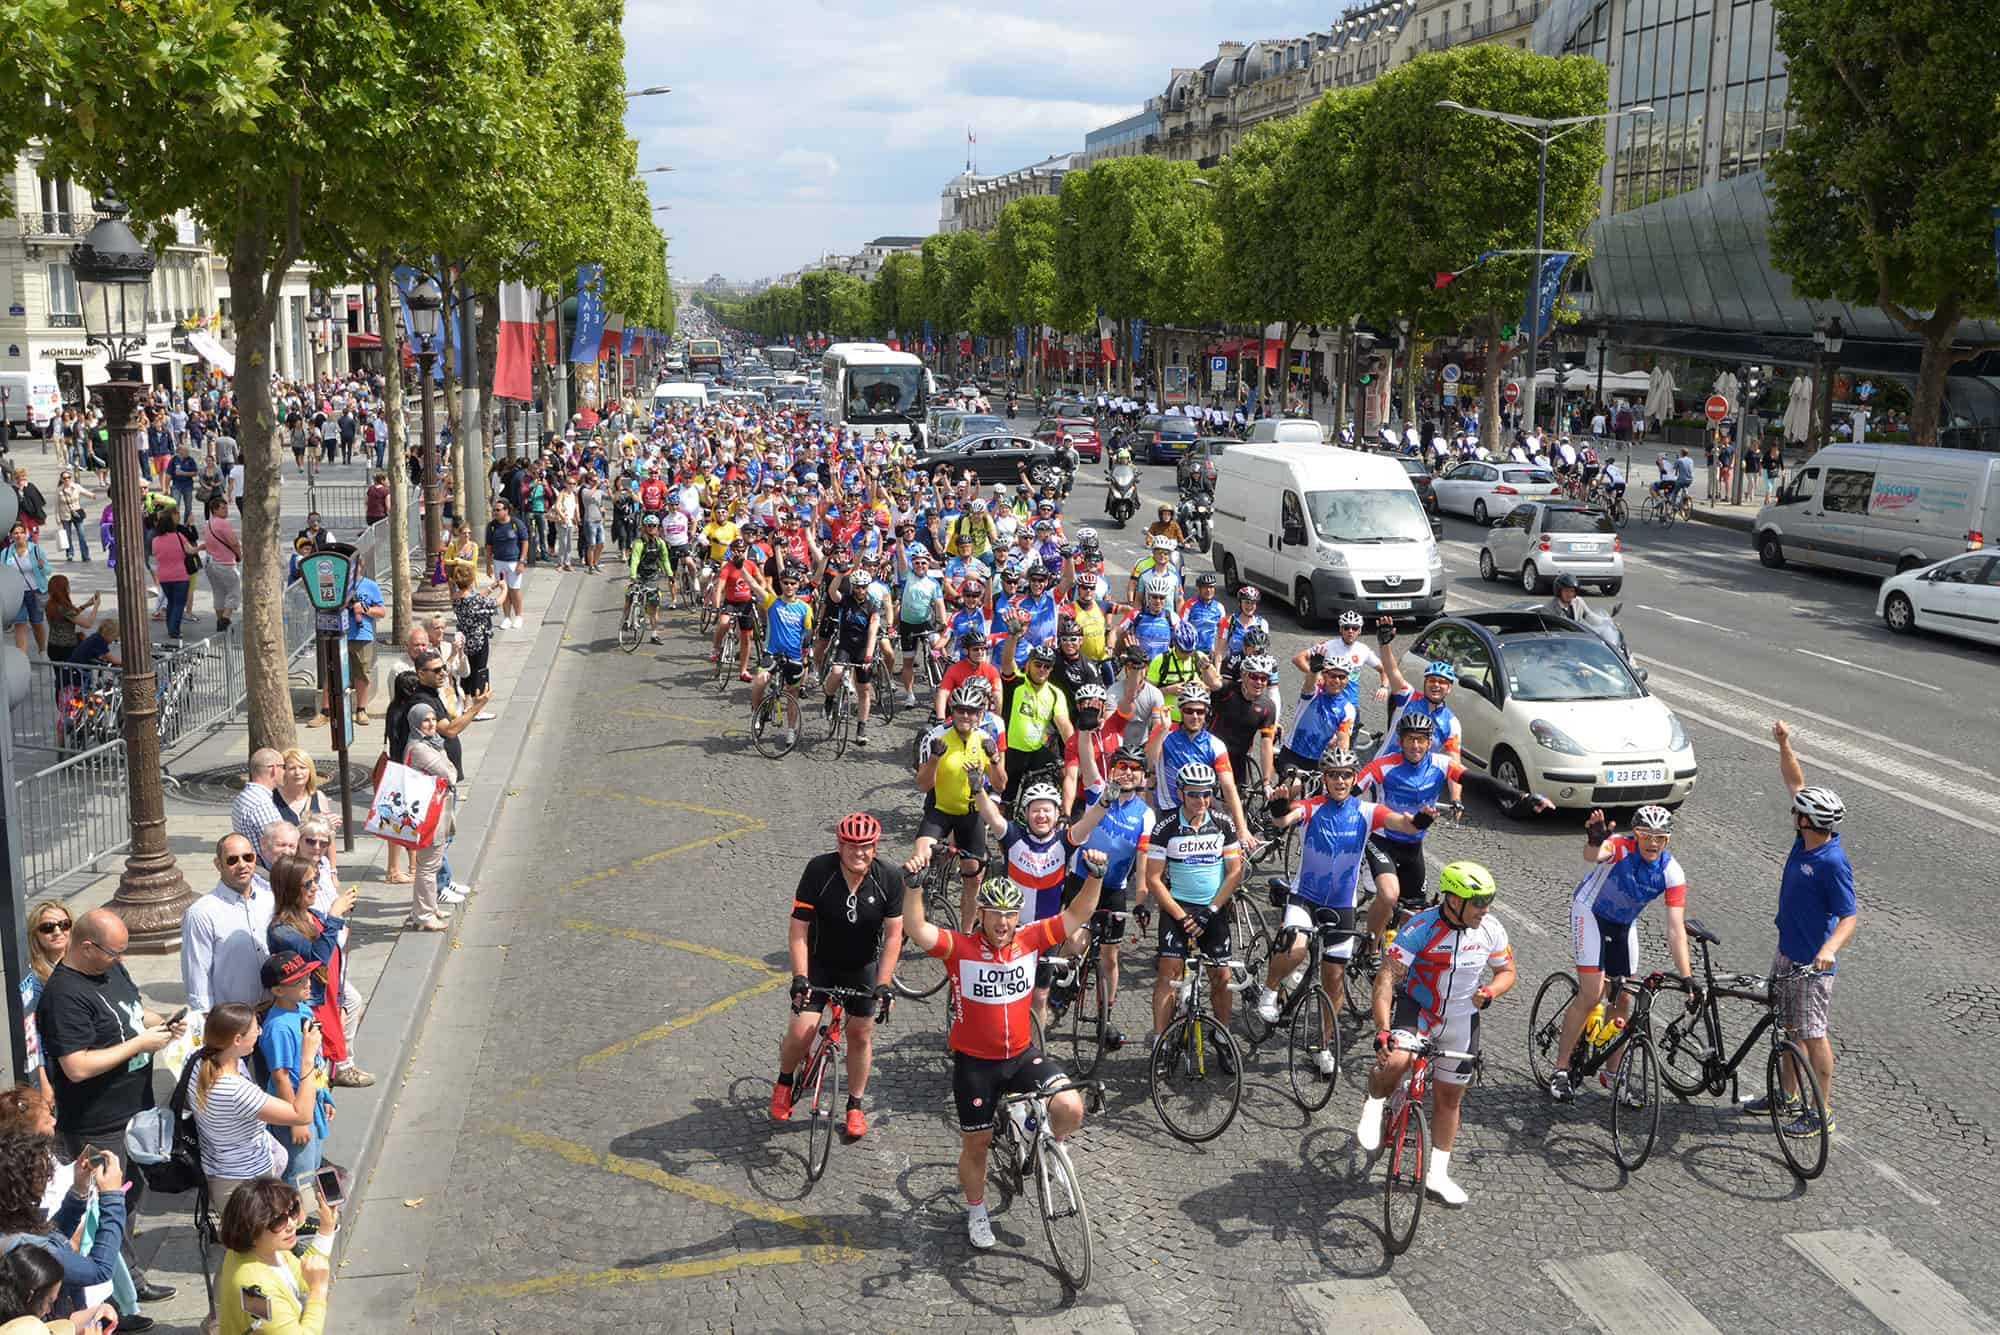 CYCLE LONDON TO PARIS - FINISH AT TOUR DE FRANCE 2020